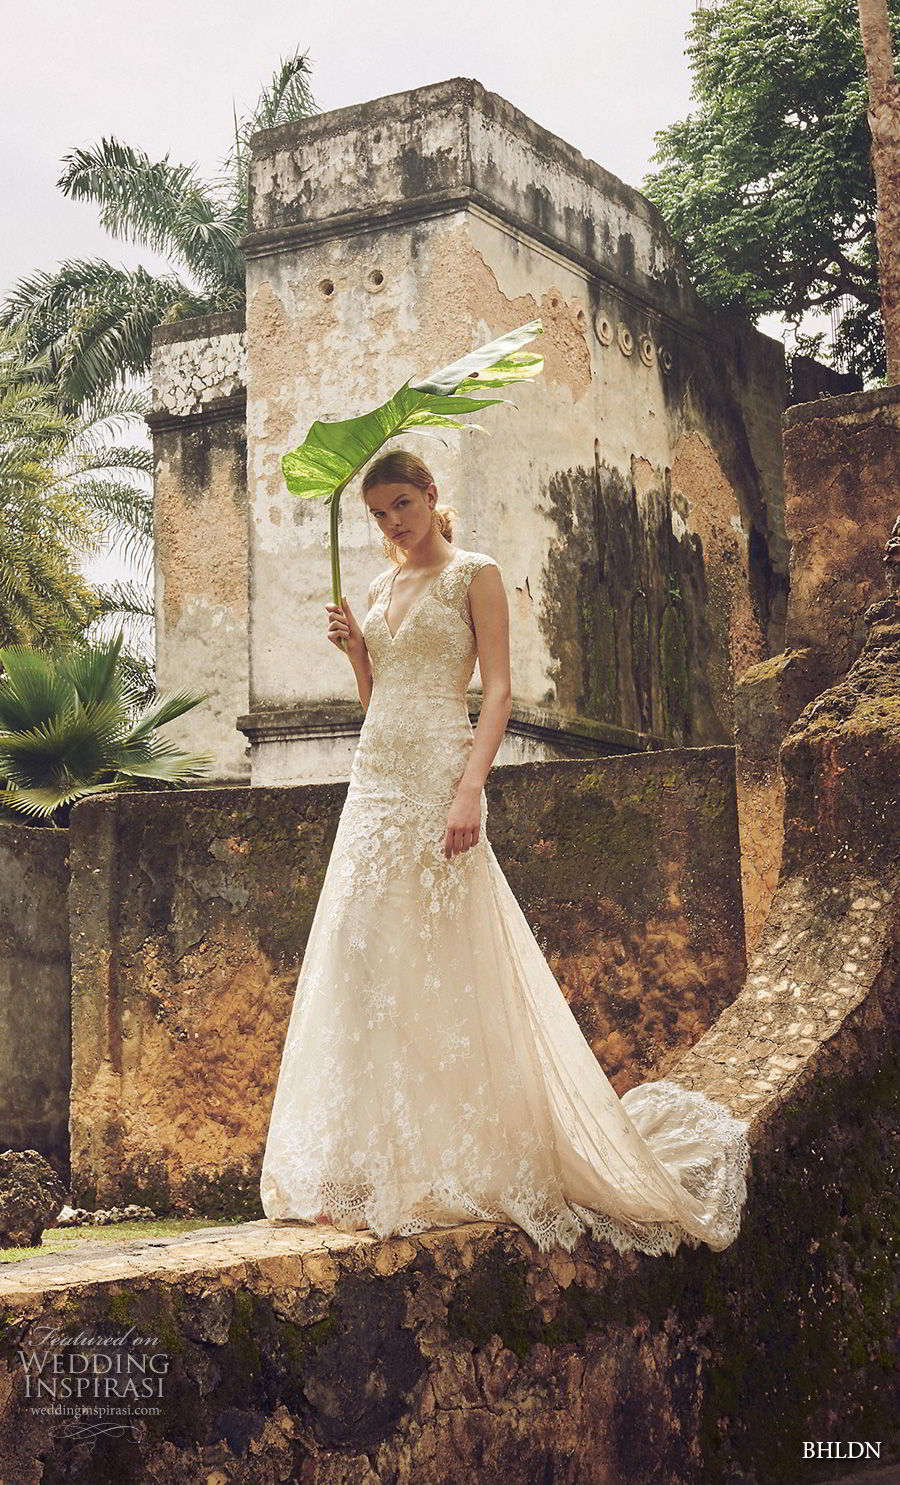 bhldn 2018 whispers bridal sleeveless thick strap v neck full embellishment romantic a line wedding dress keyhole back short train (12) mv